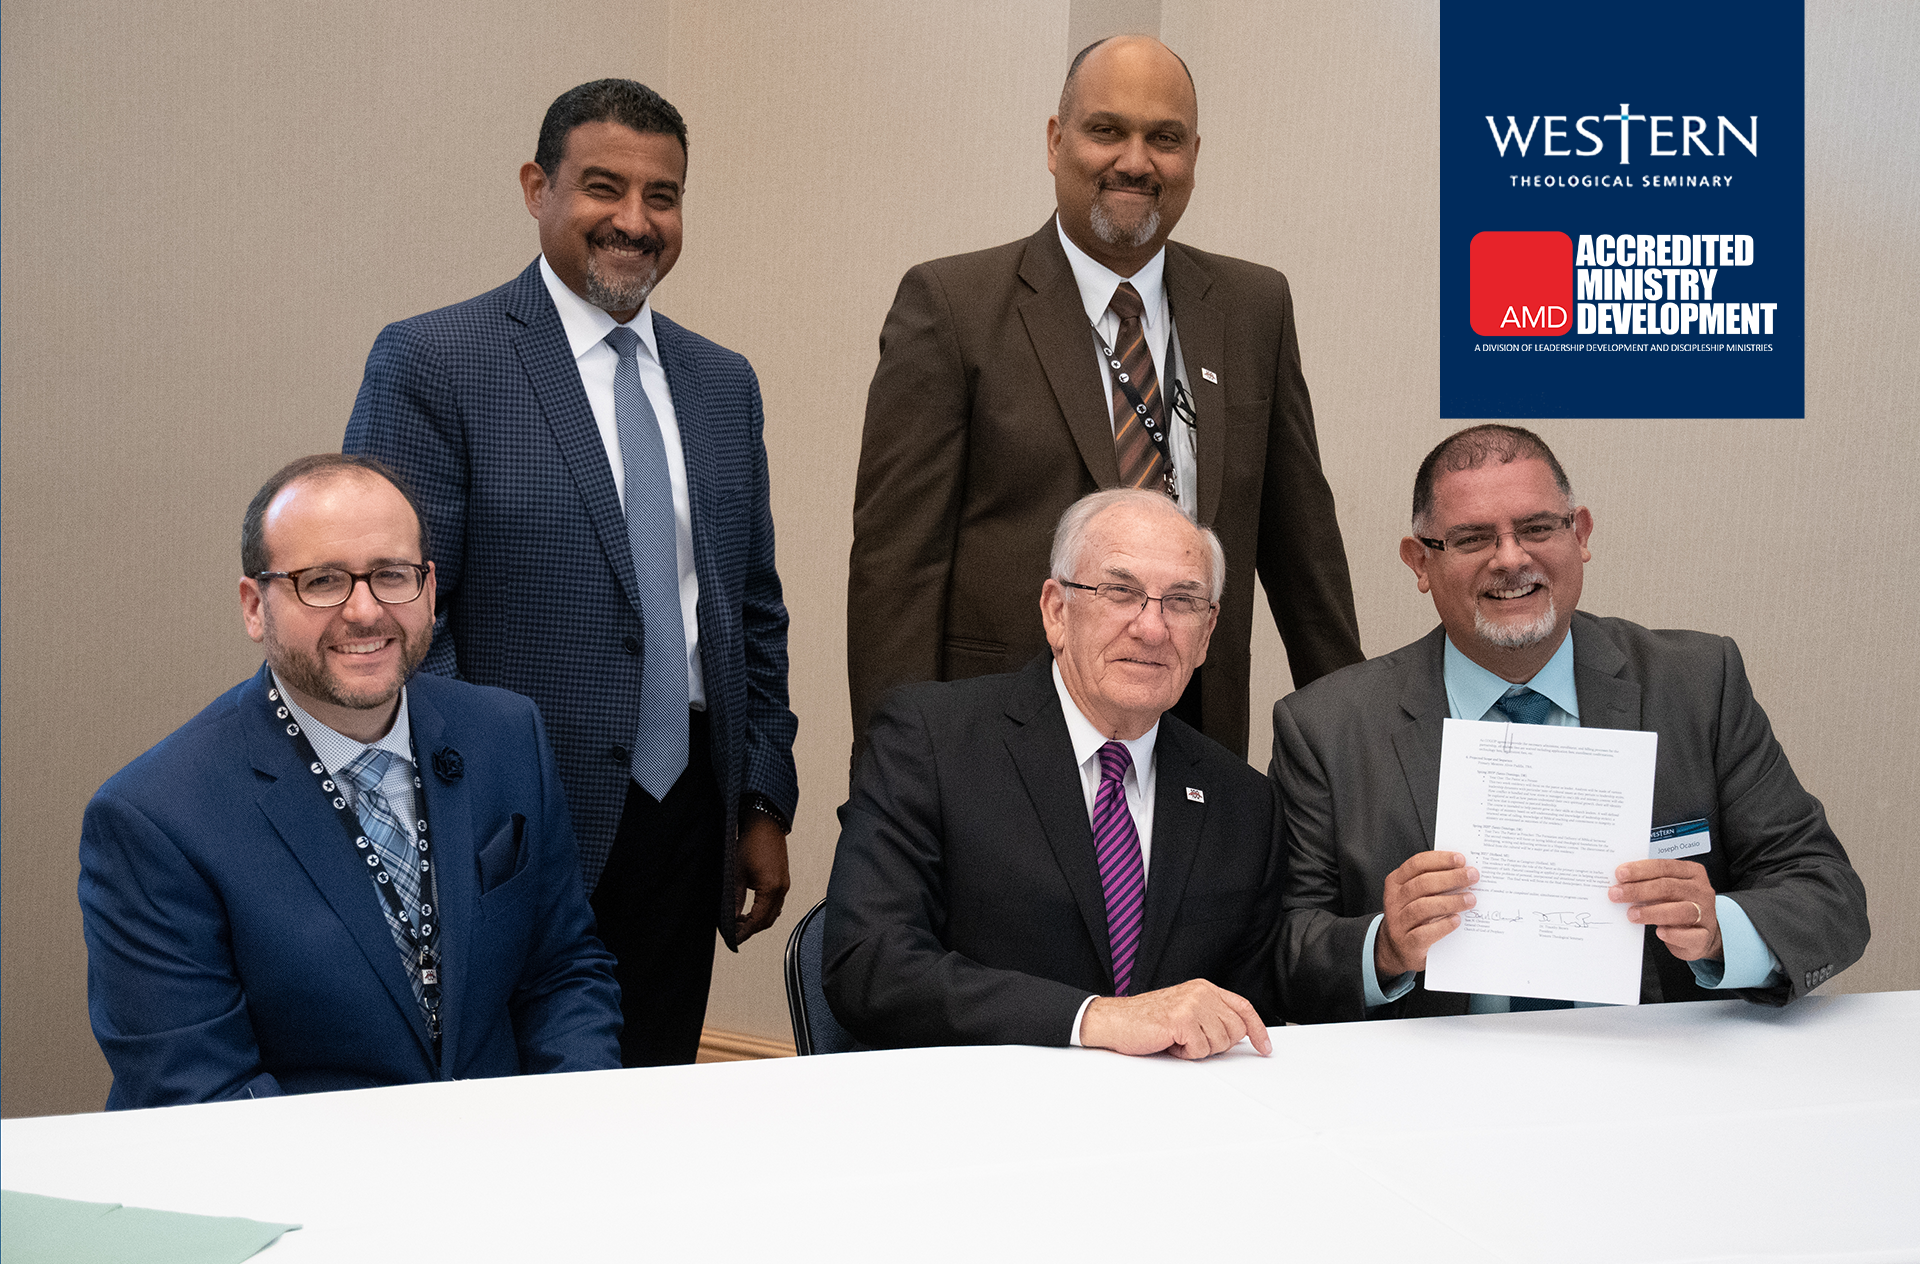 COGOP Adds New Academic Partner to AMD, Expanding Offerings to Include Doctor of Ministry in Spanish Language